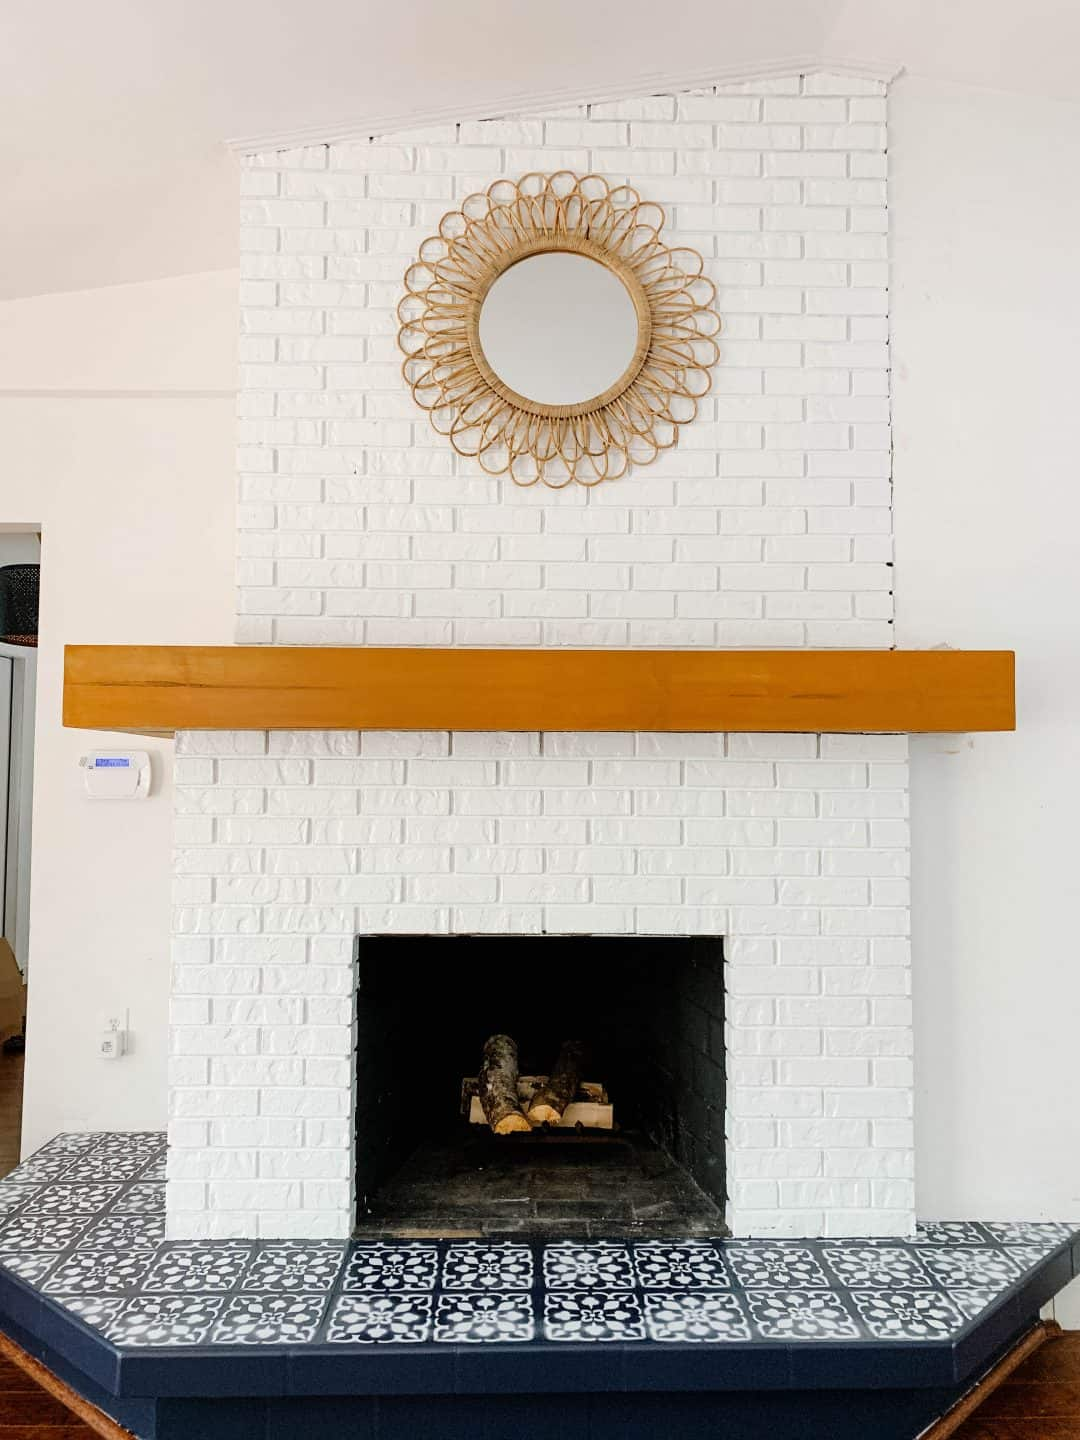 How To Paint Fireplace Tile With A Stencil Mistakes To Avoid On Your Diy Fireplace Makeover The Confused Millennial